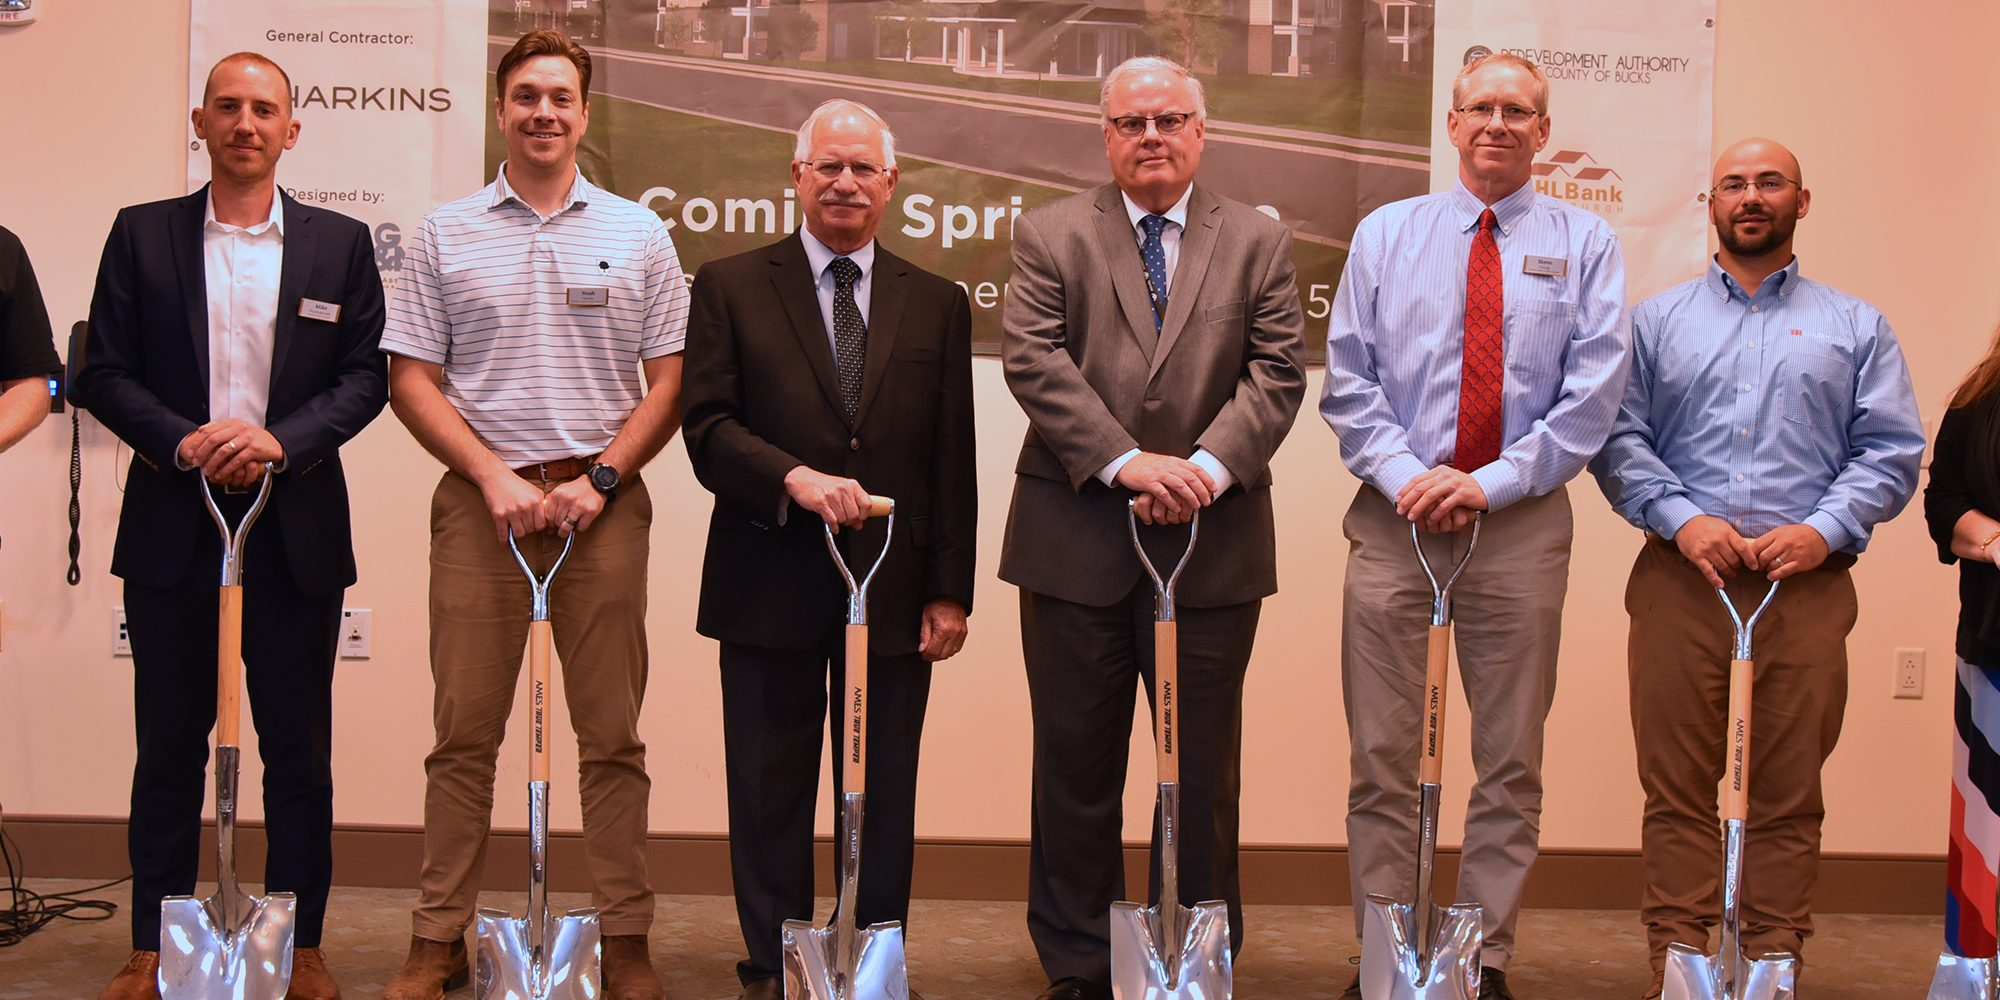 Harkins Members standing side by side at the Sellersville Groundbreaking with shovels in hand.